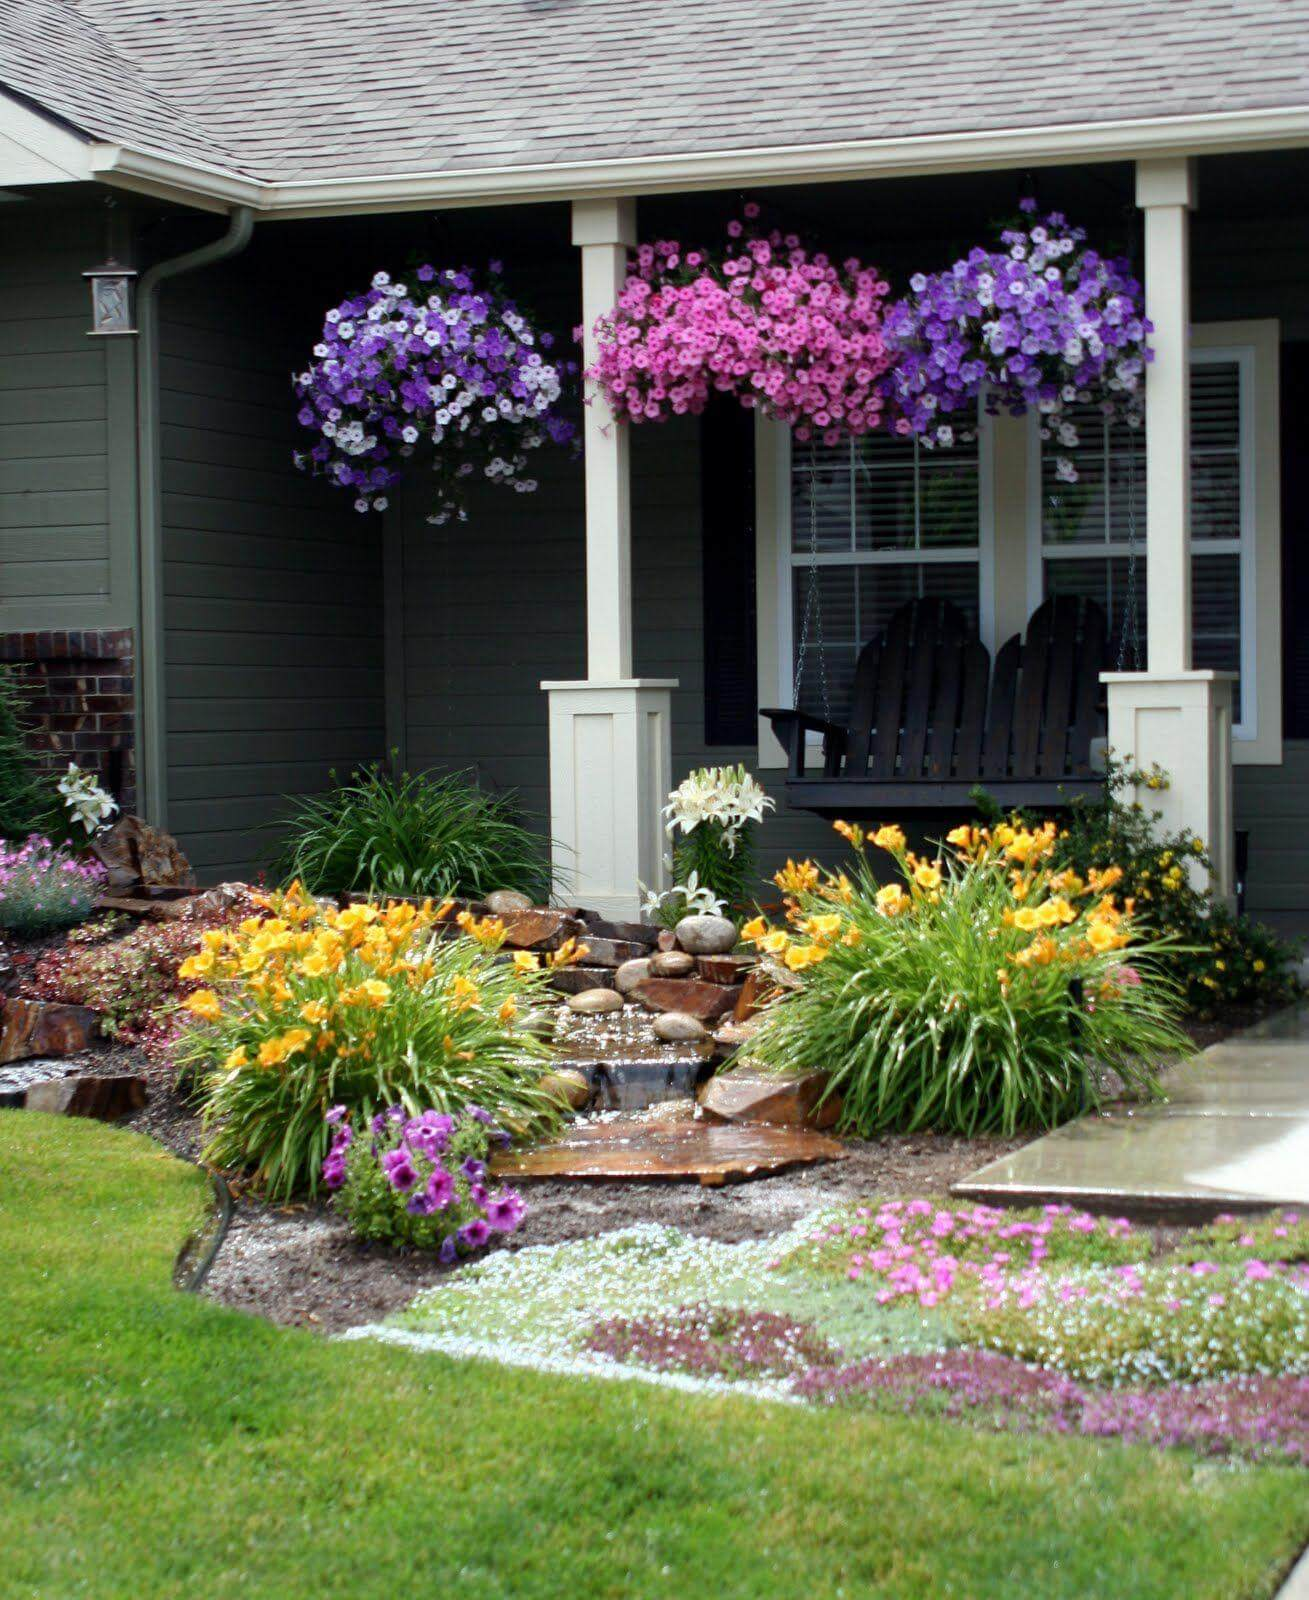 Home Design Backyard Ideas: 50 Best Front Yard Landscaping Ideas And Garden Designs